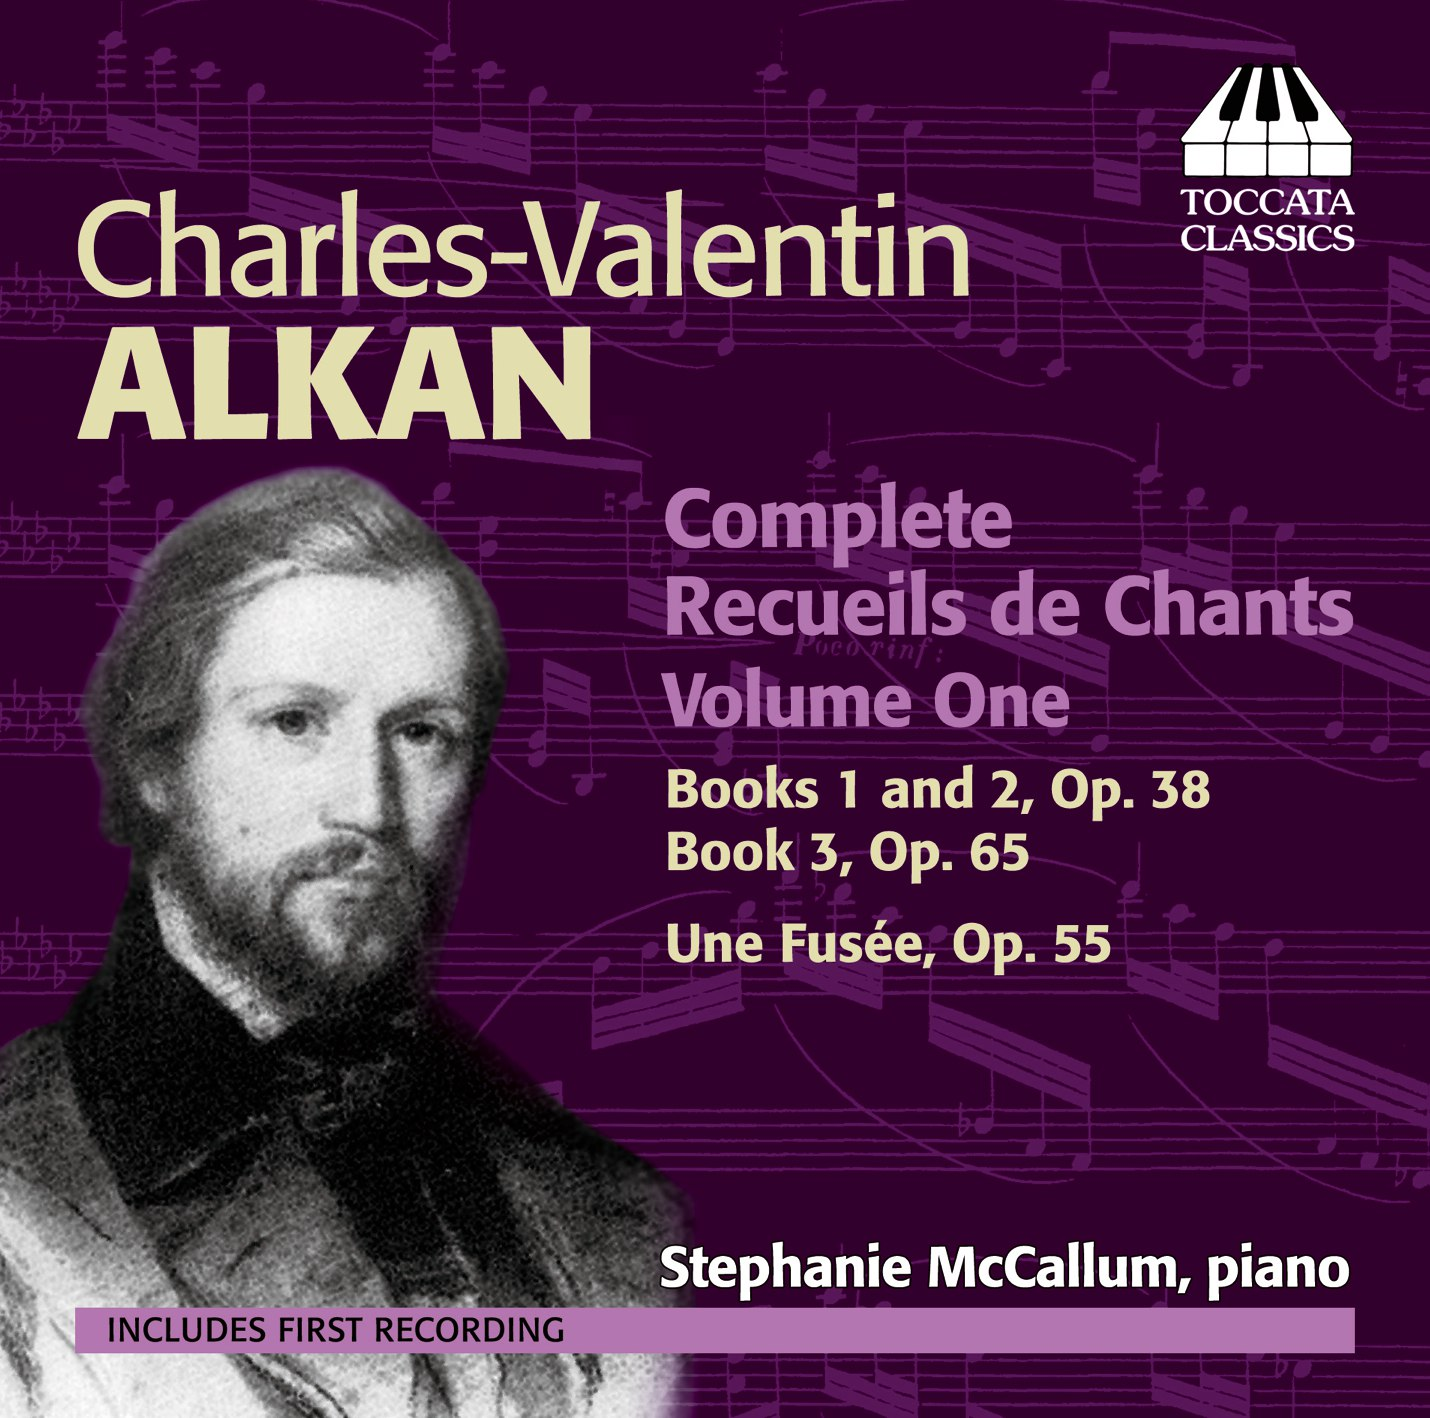 Schön Charles Valentin Alkan: Complete Recueils De Chants, Volume One |  Recordings | Toccata Classics | Toccata Press